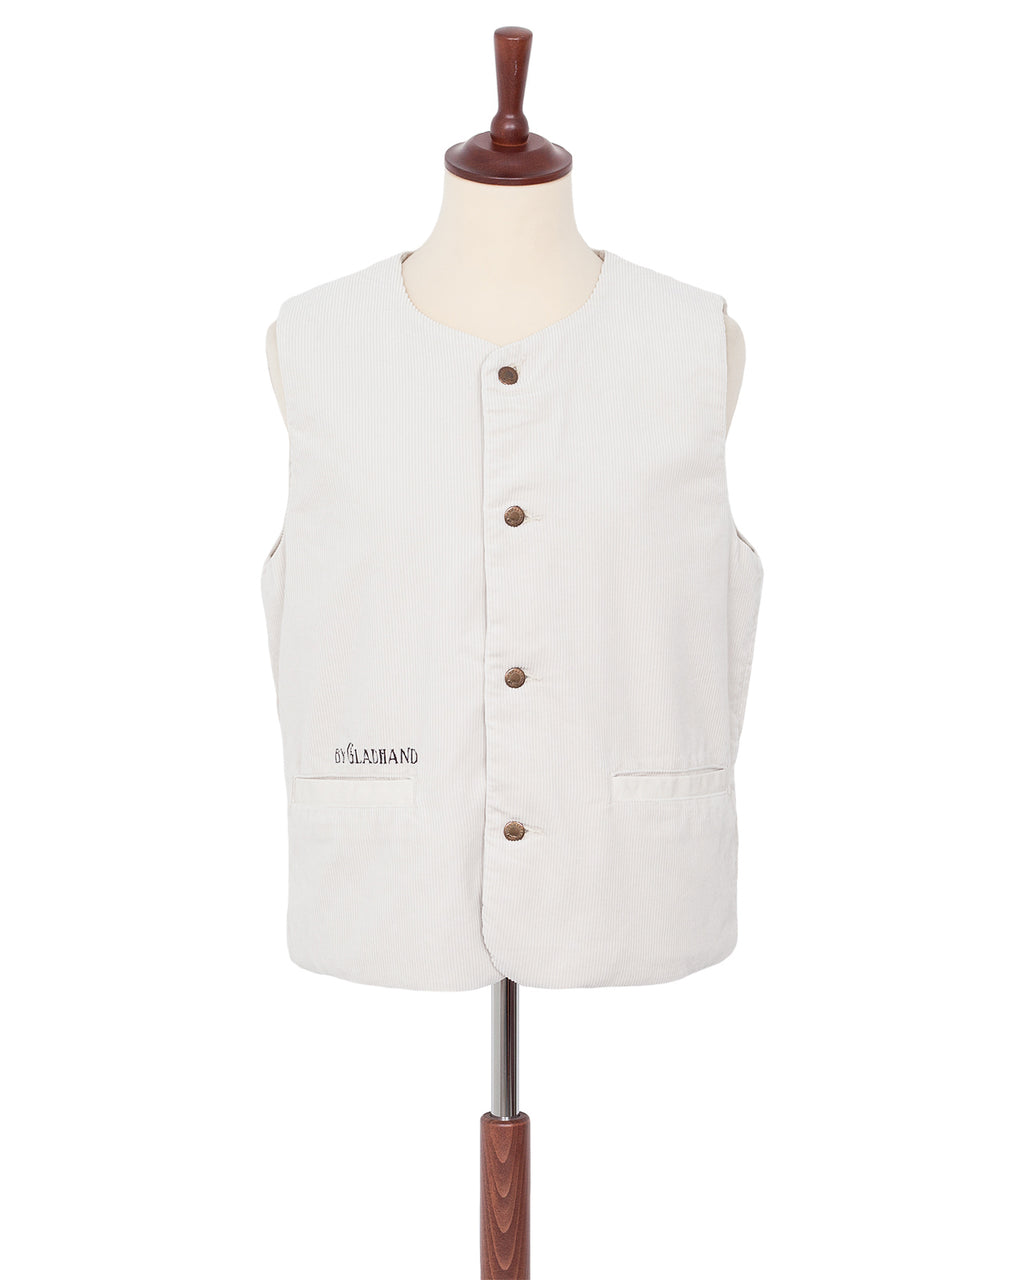 By Glad Hand, Brother Union, Corduroy Vest, White